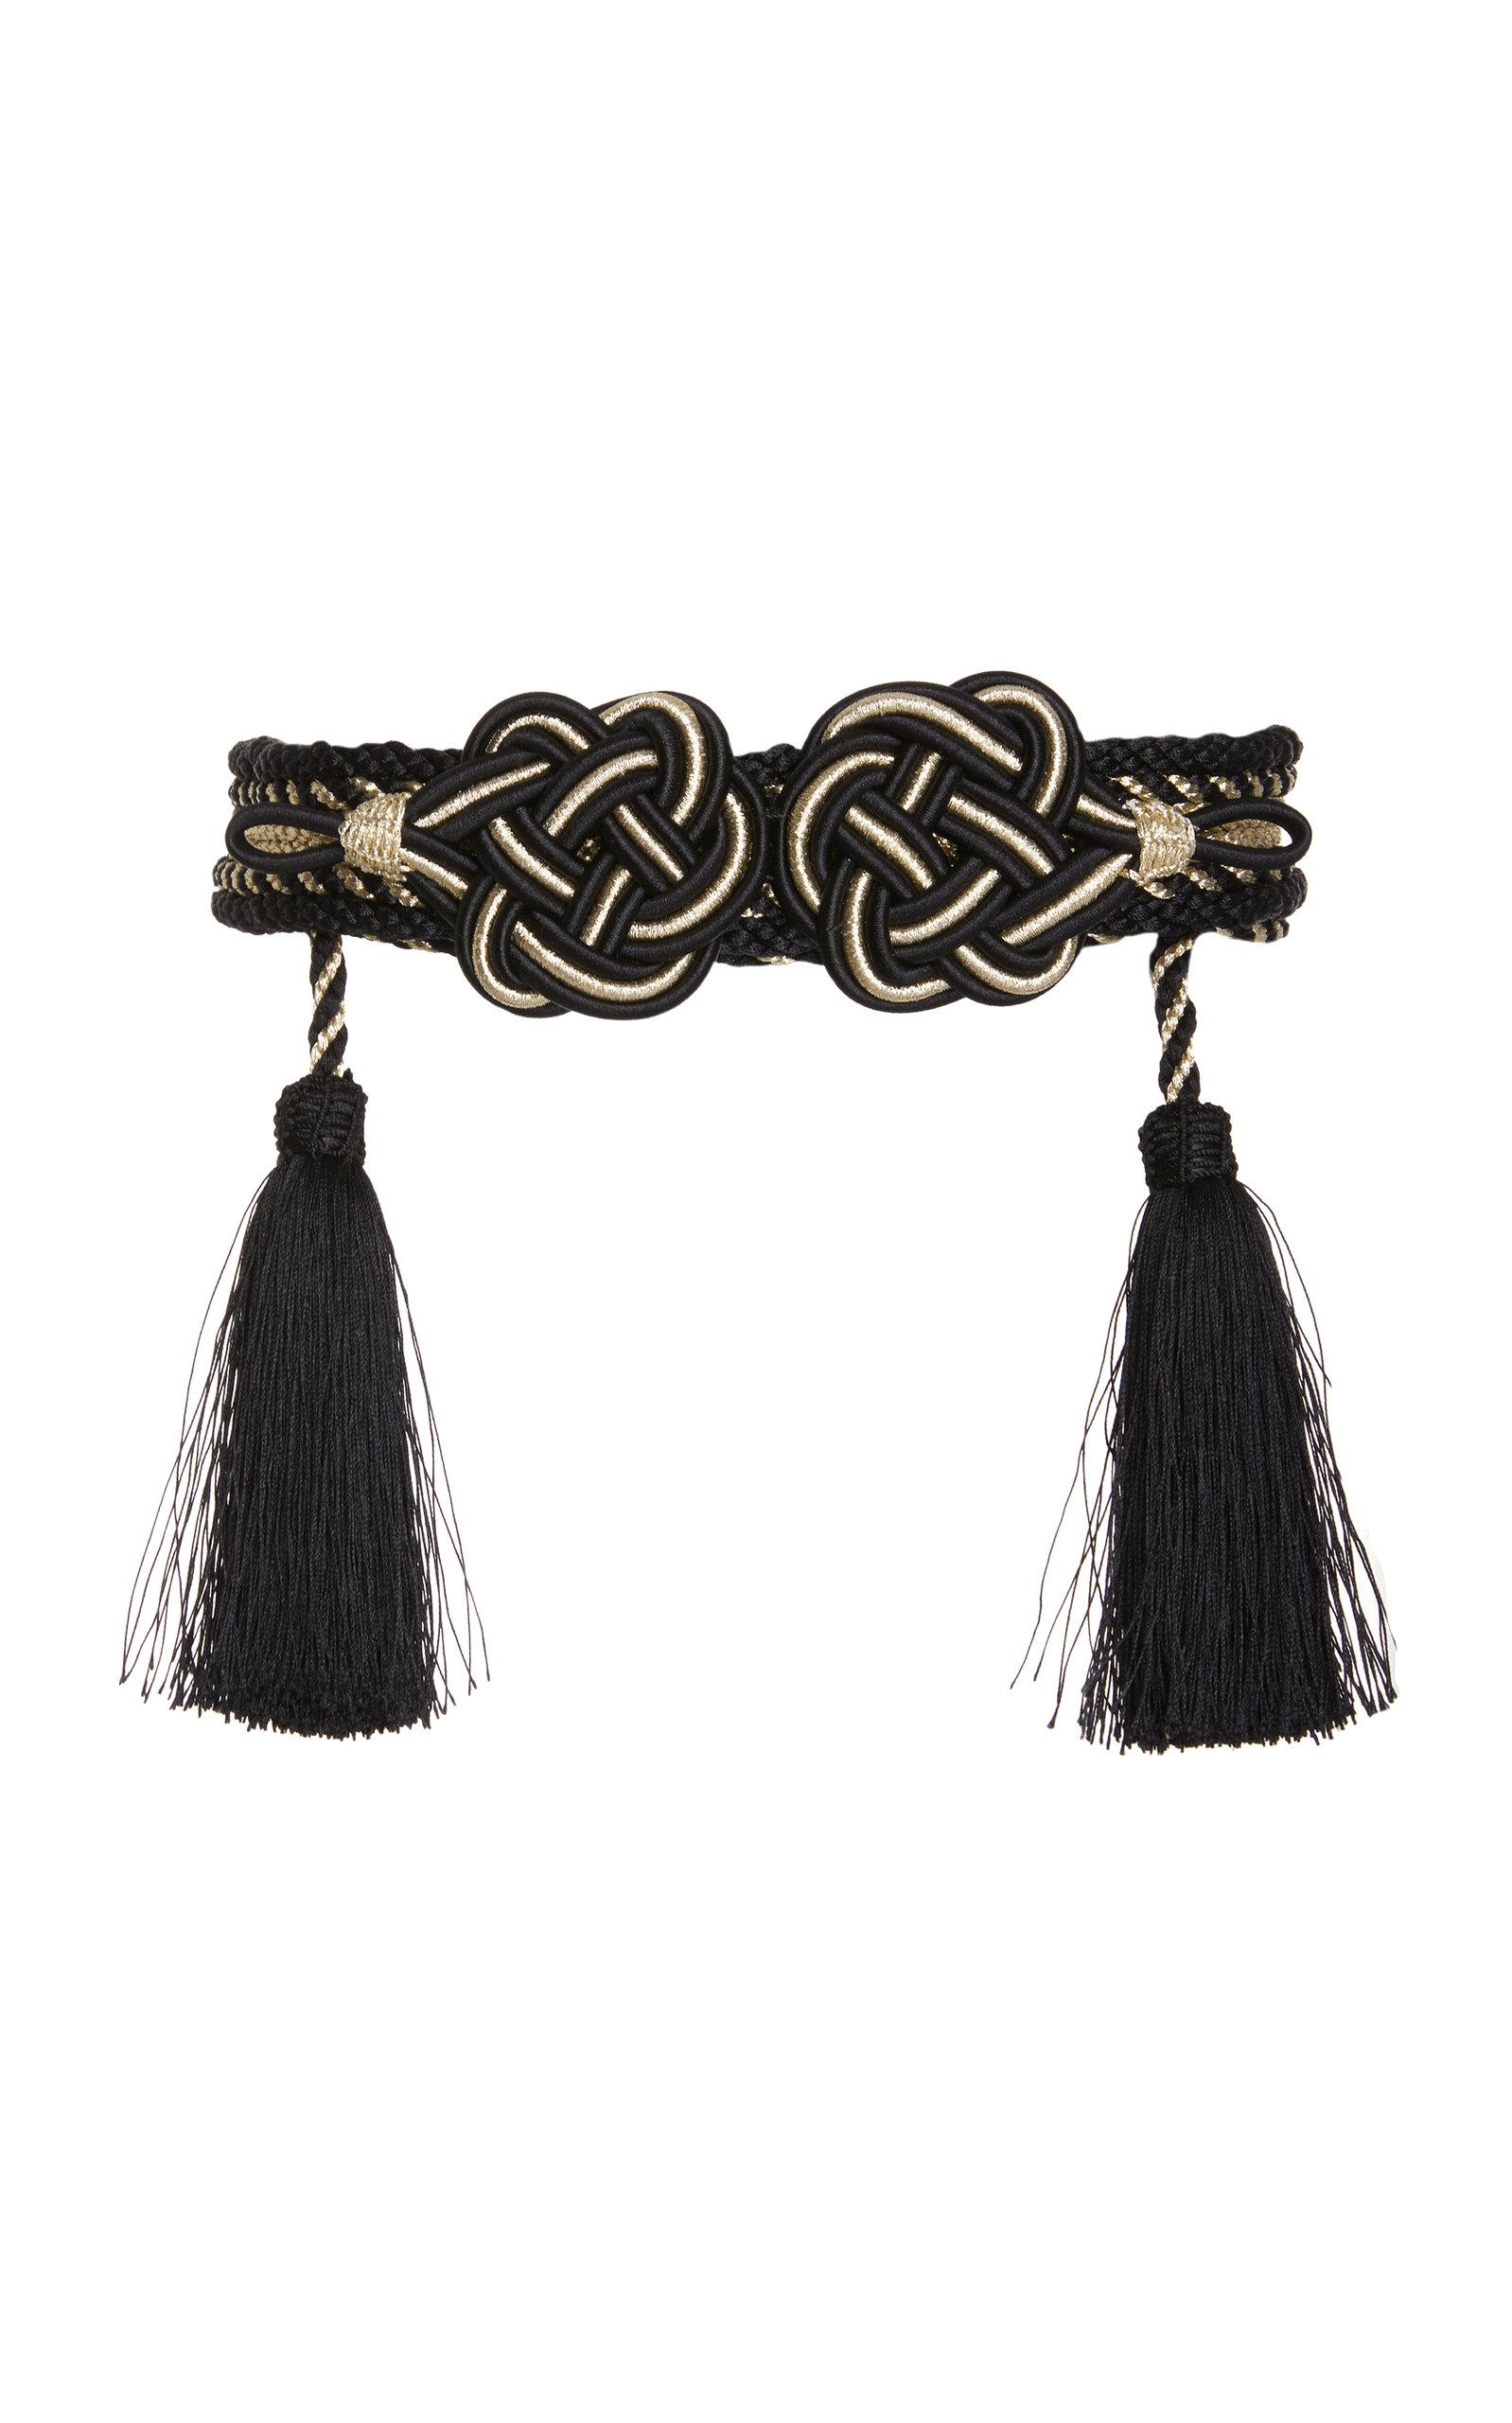 Rebecca De Ravenel Mouna Passementerie Braided Lurex Belt In Black/white